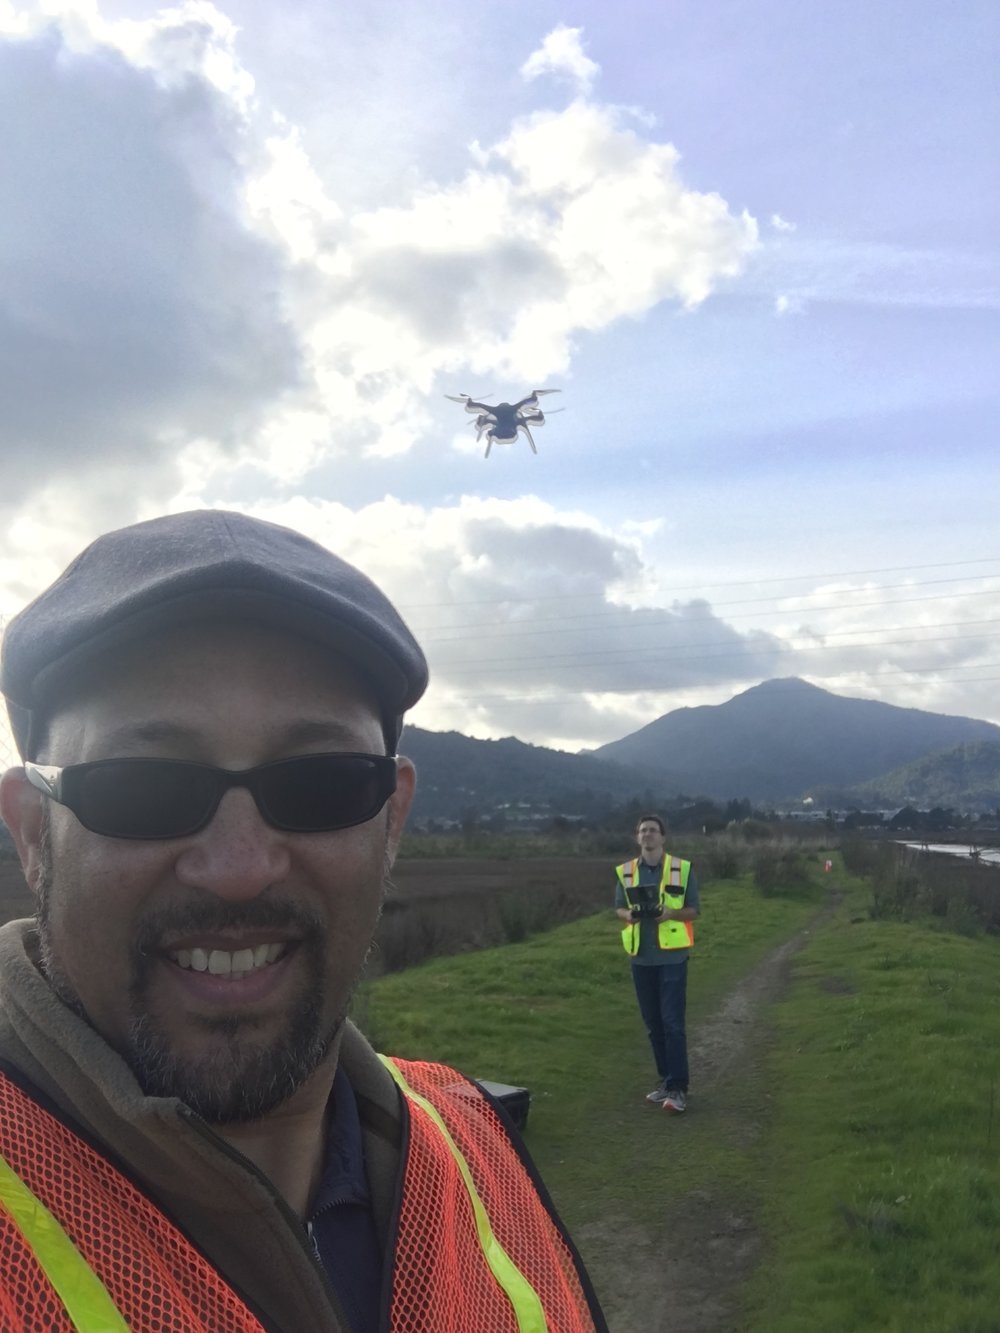 Figure 5. Tony Hale and Pete Kauhanen of the San Francisco Estuary Institute, flying the 3DR Solo unmanned aerial vehicle in the Corte Madera Marsh, February 21, 2018